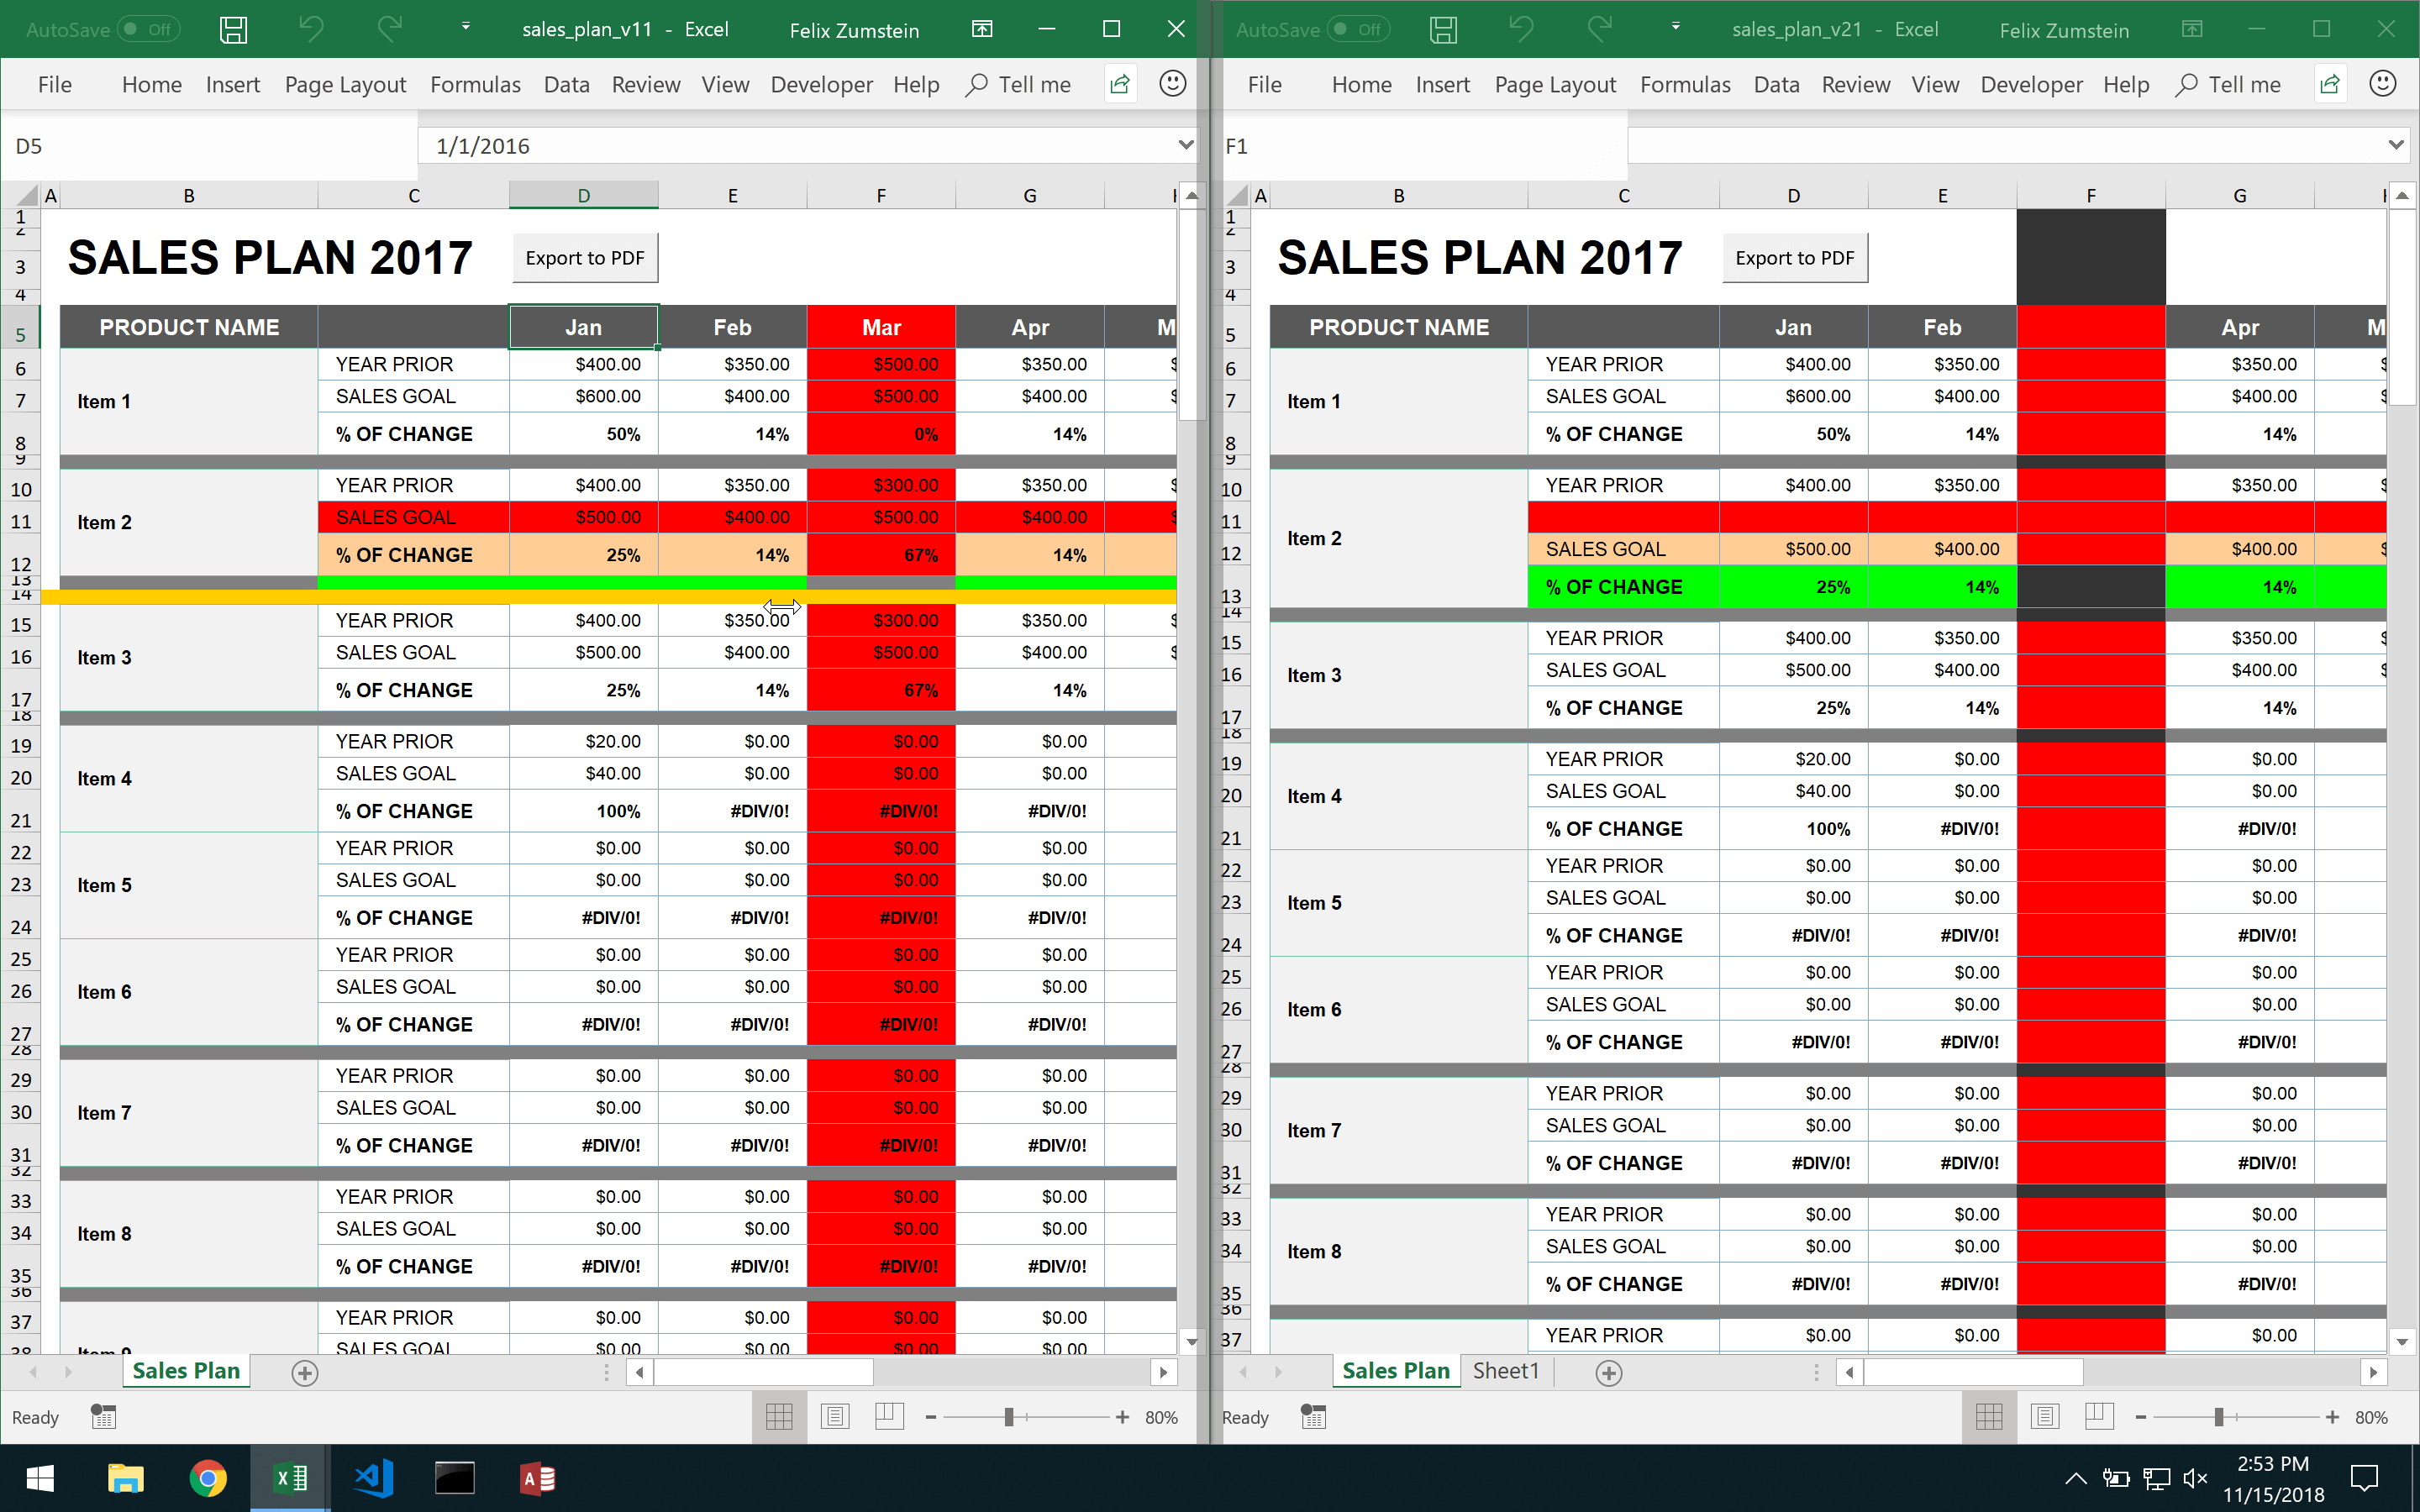 DiffEngineX Diff Sheets Details